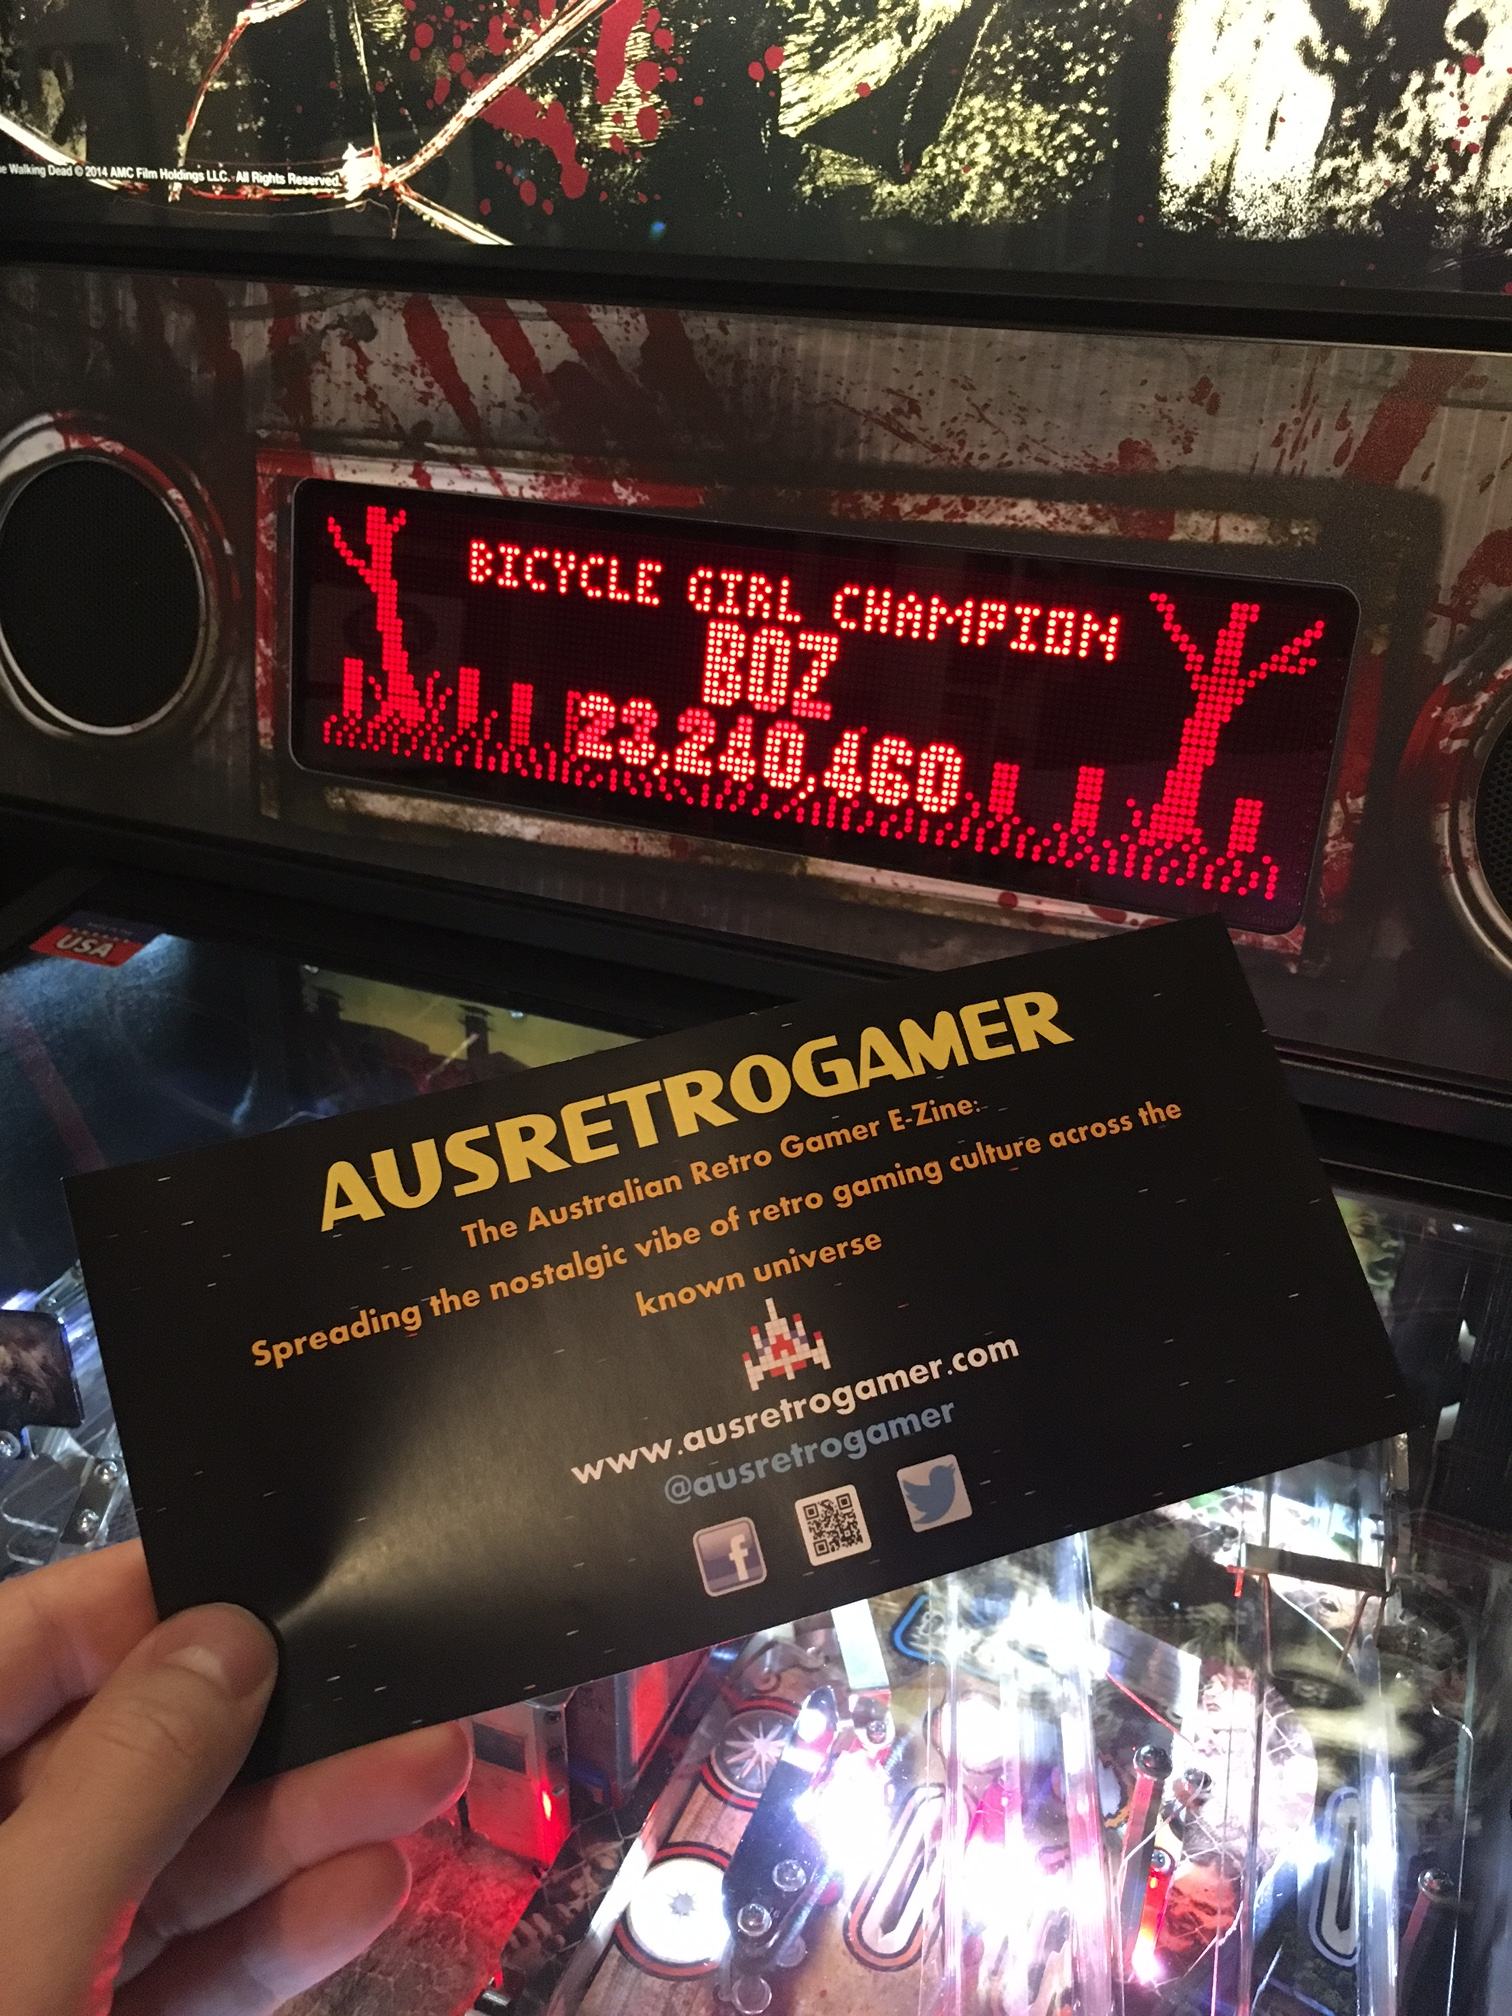 ausretrogamer: The Walking Dead: Bicycle Girl Champion (Pinball Bonus Mode) 23,240,460 points on 2017-04-23 22:30:59